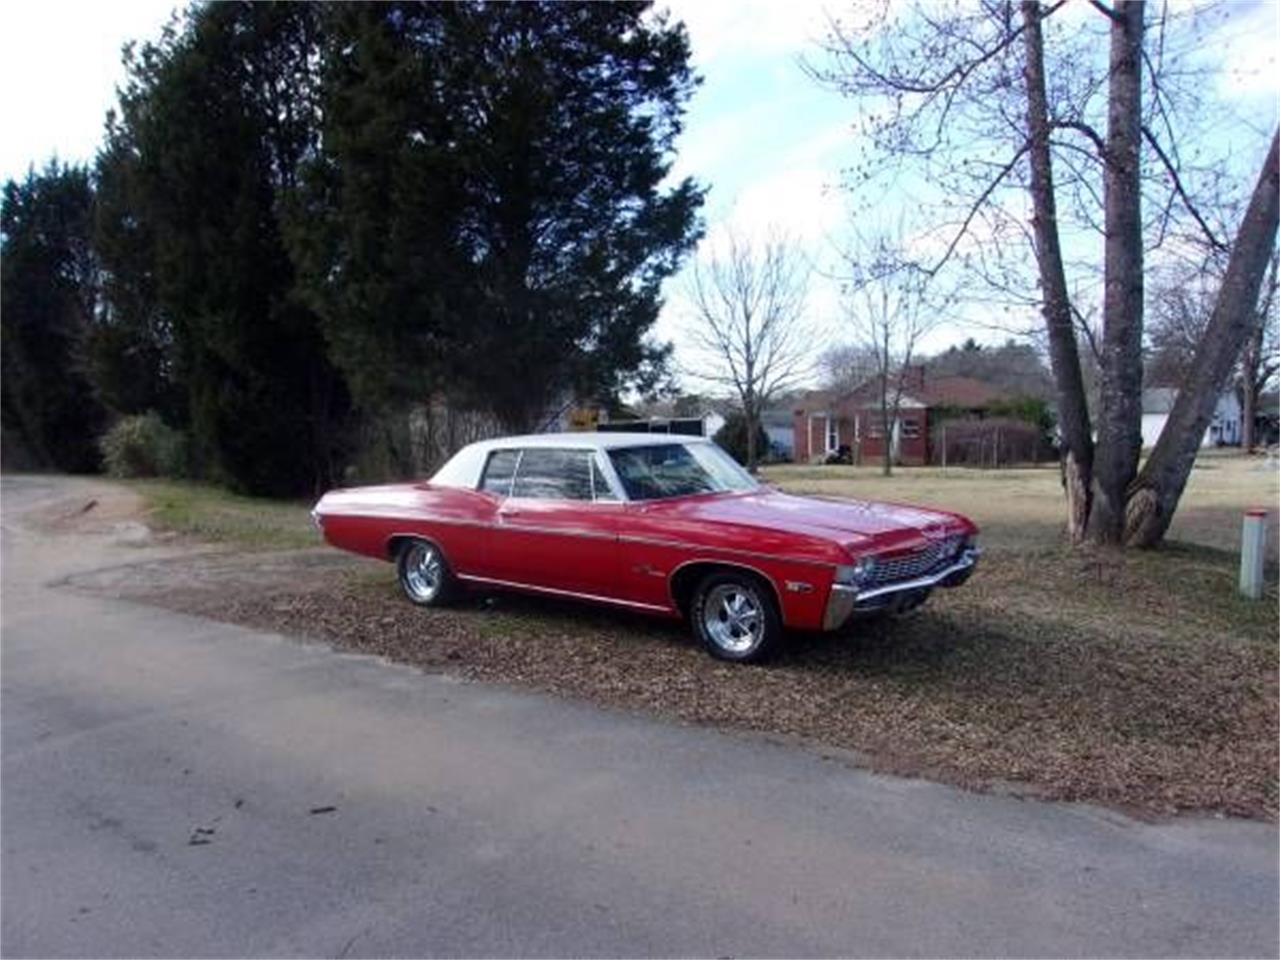 1968 Chevrolet Impala for sale in Cadillac, MI – photo 2